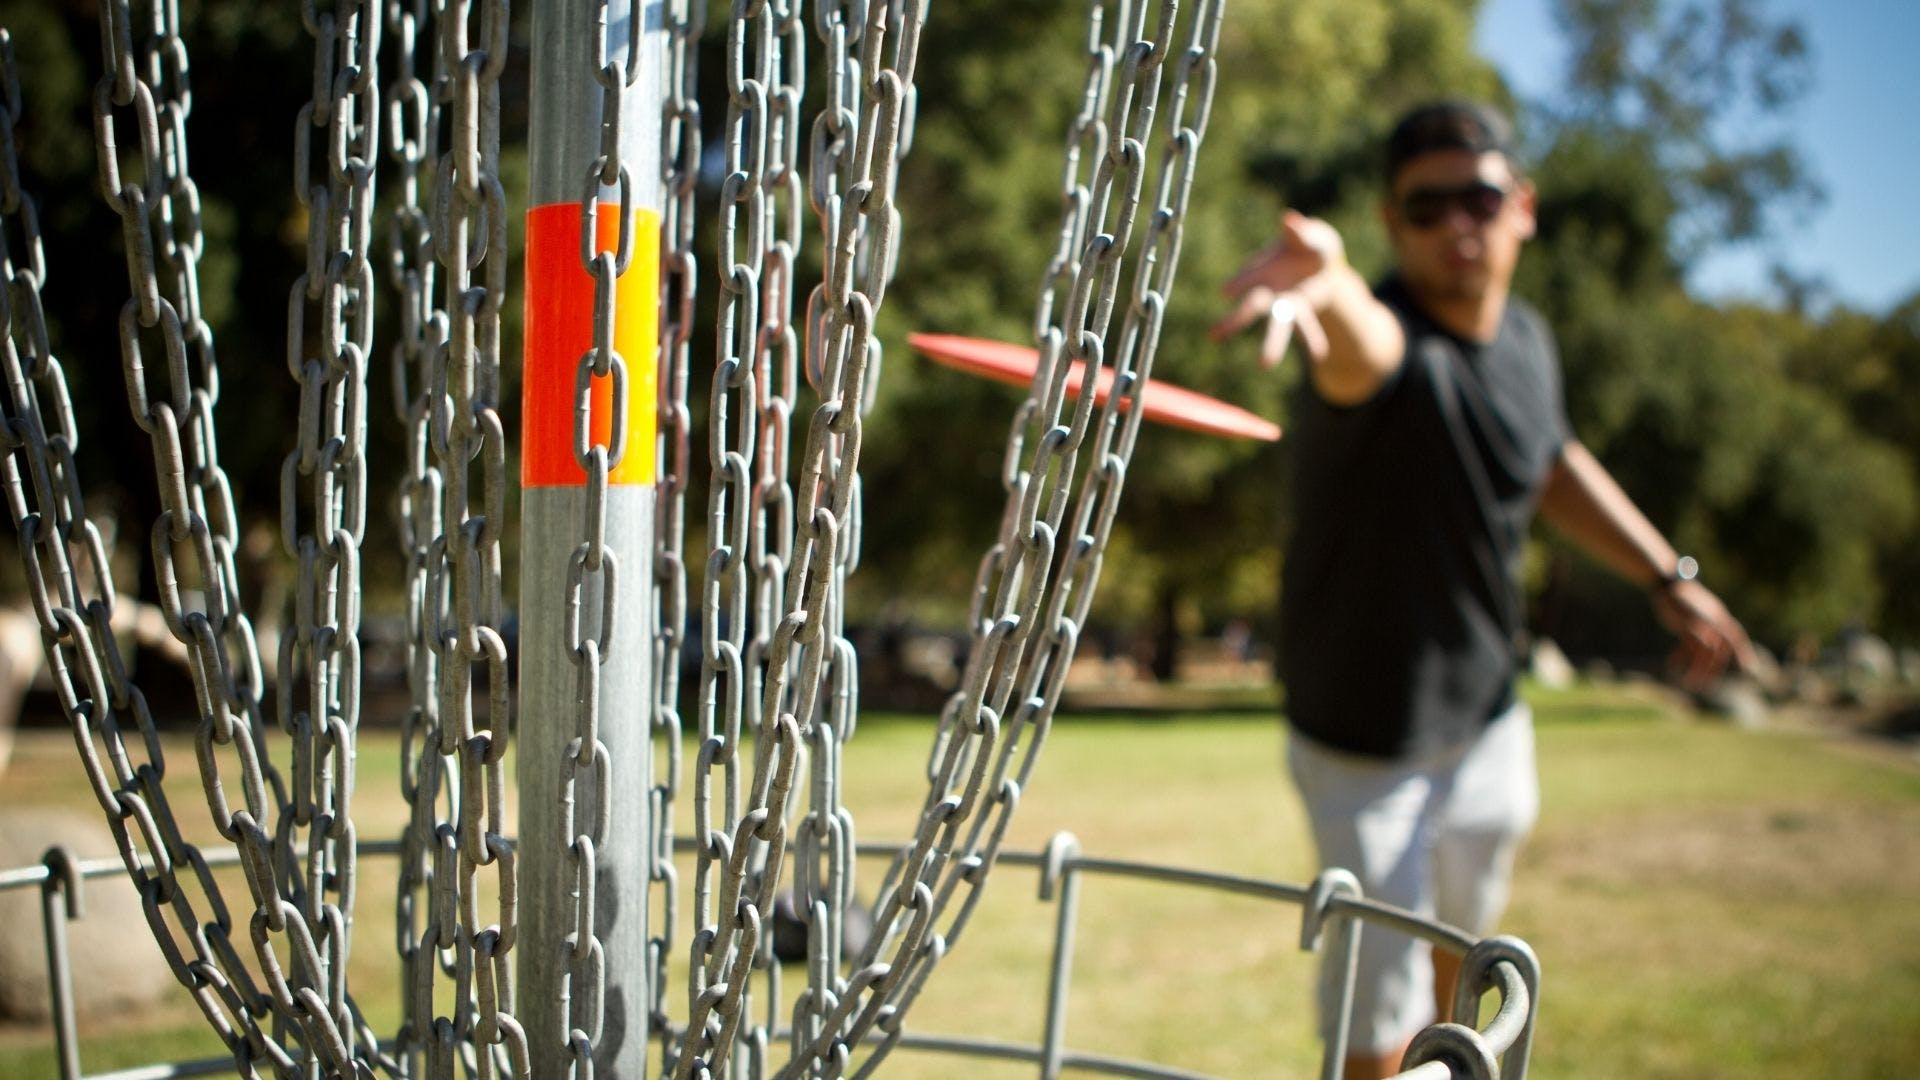 Player in background throwing a disc golf into the basket in the foreground